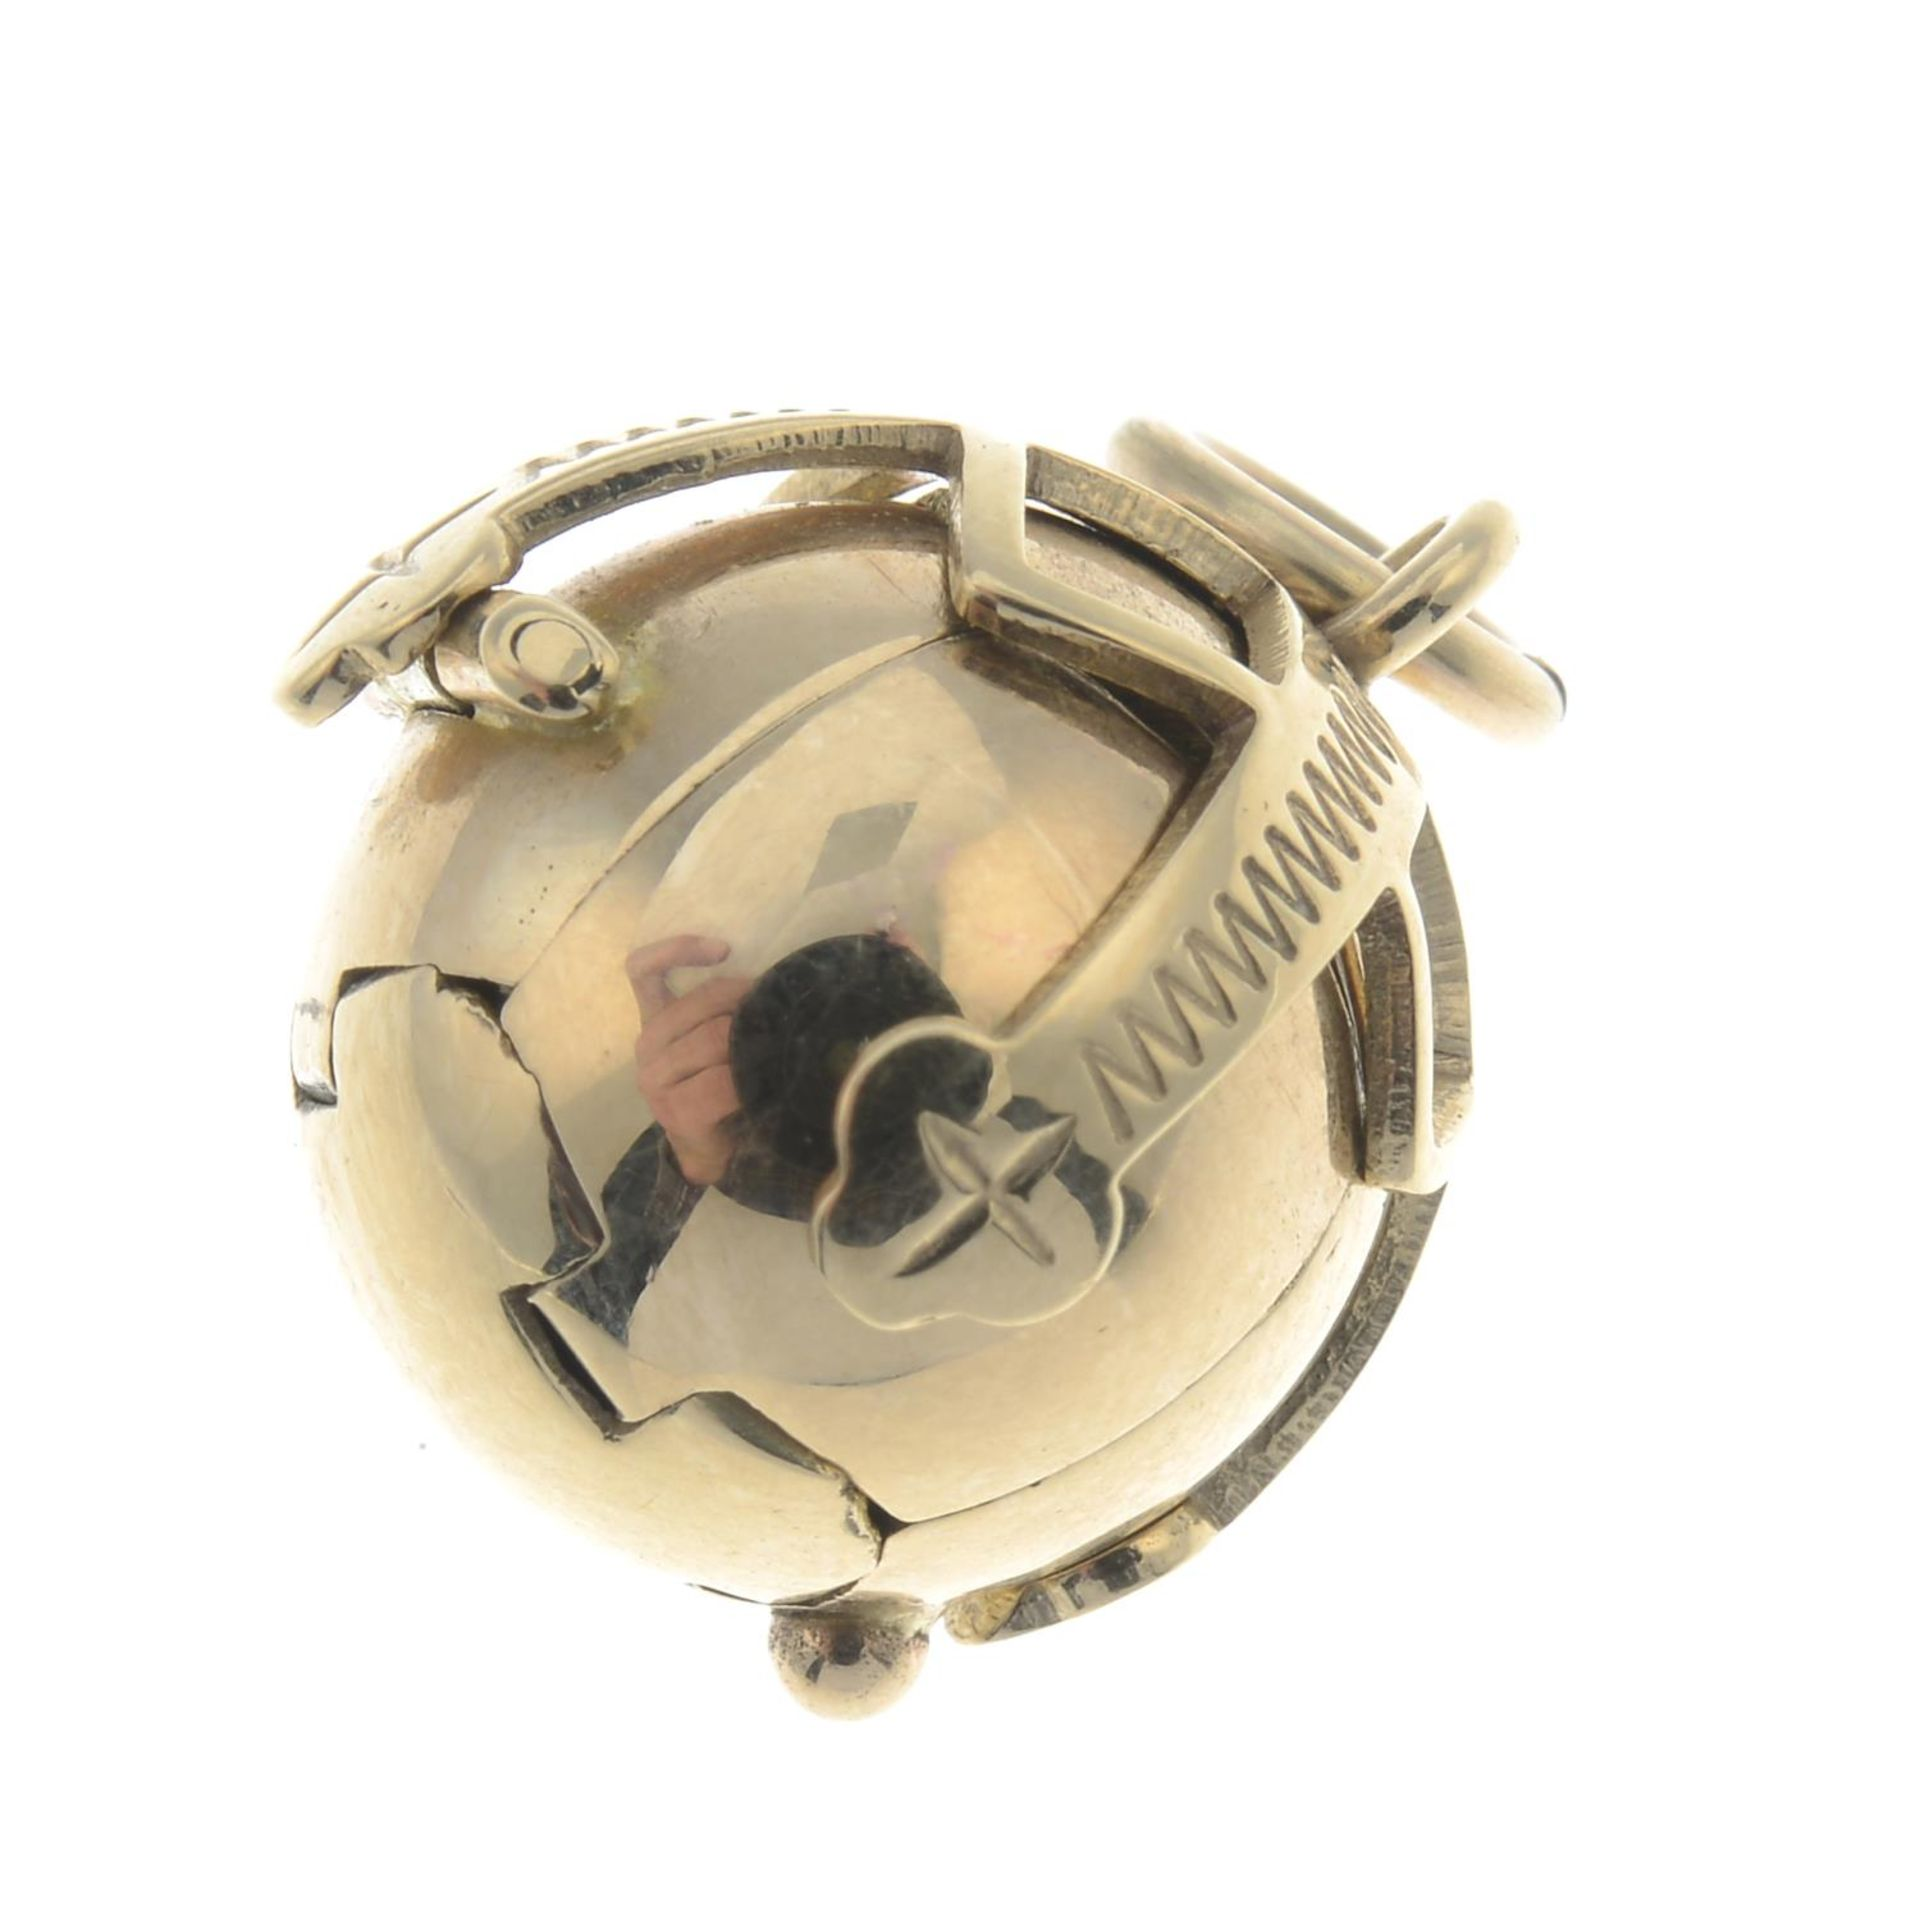 Los 48 - A 9ct gold Masonic ball fob.Hallmarks for 9ct gold.